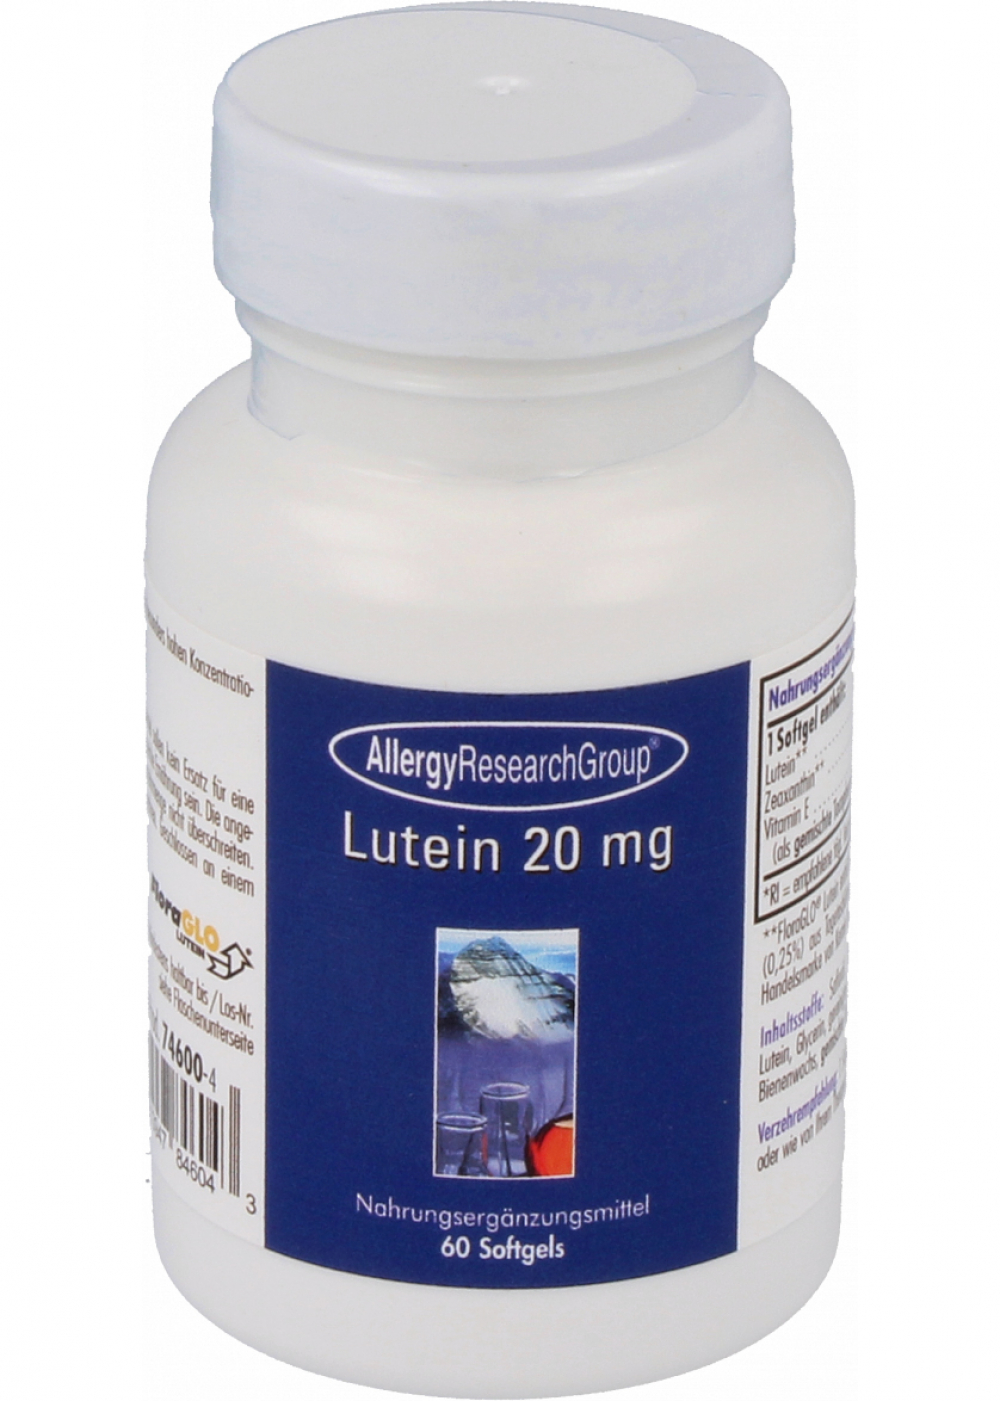 Allergy Research Group Lutein 20 mg 60 Softgels